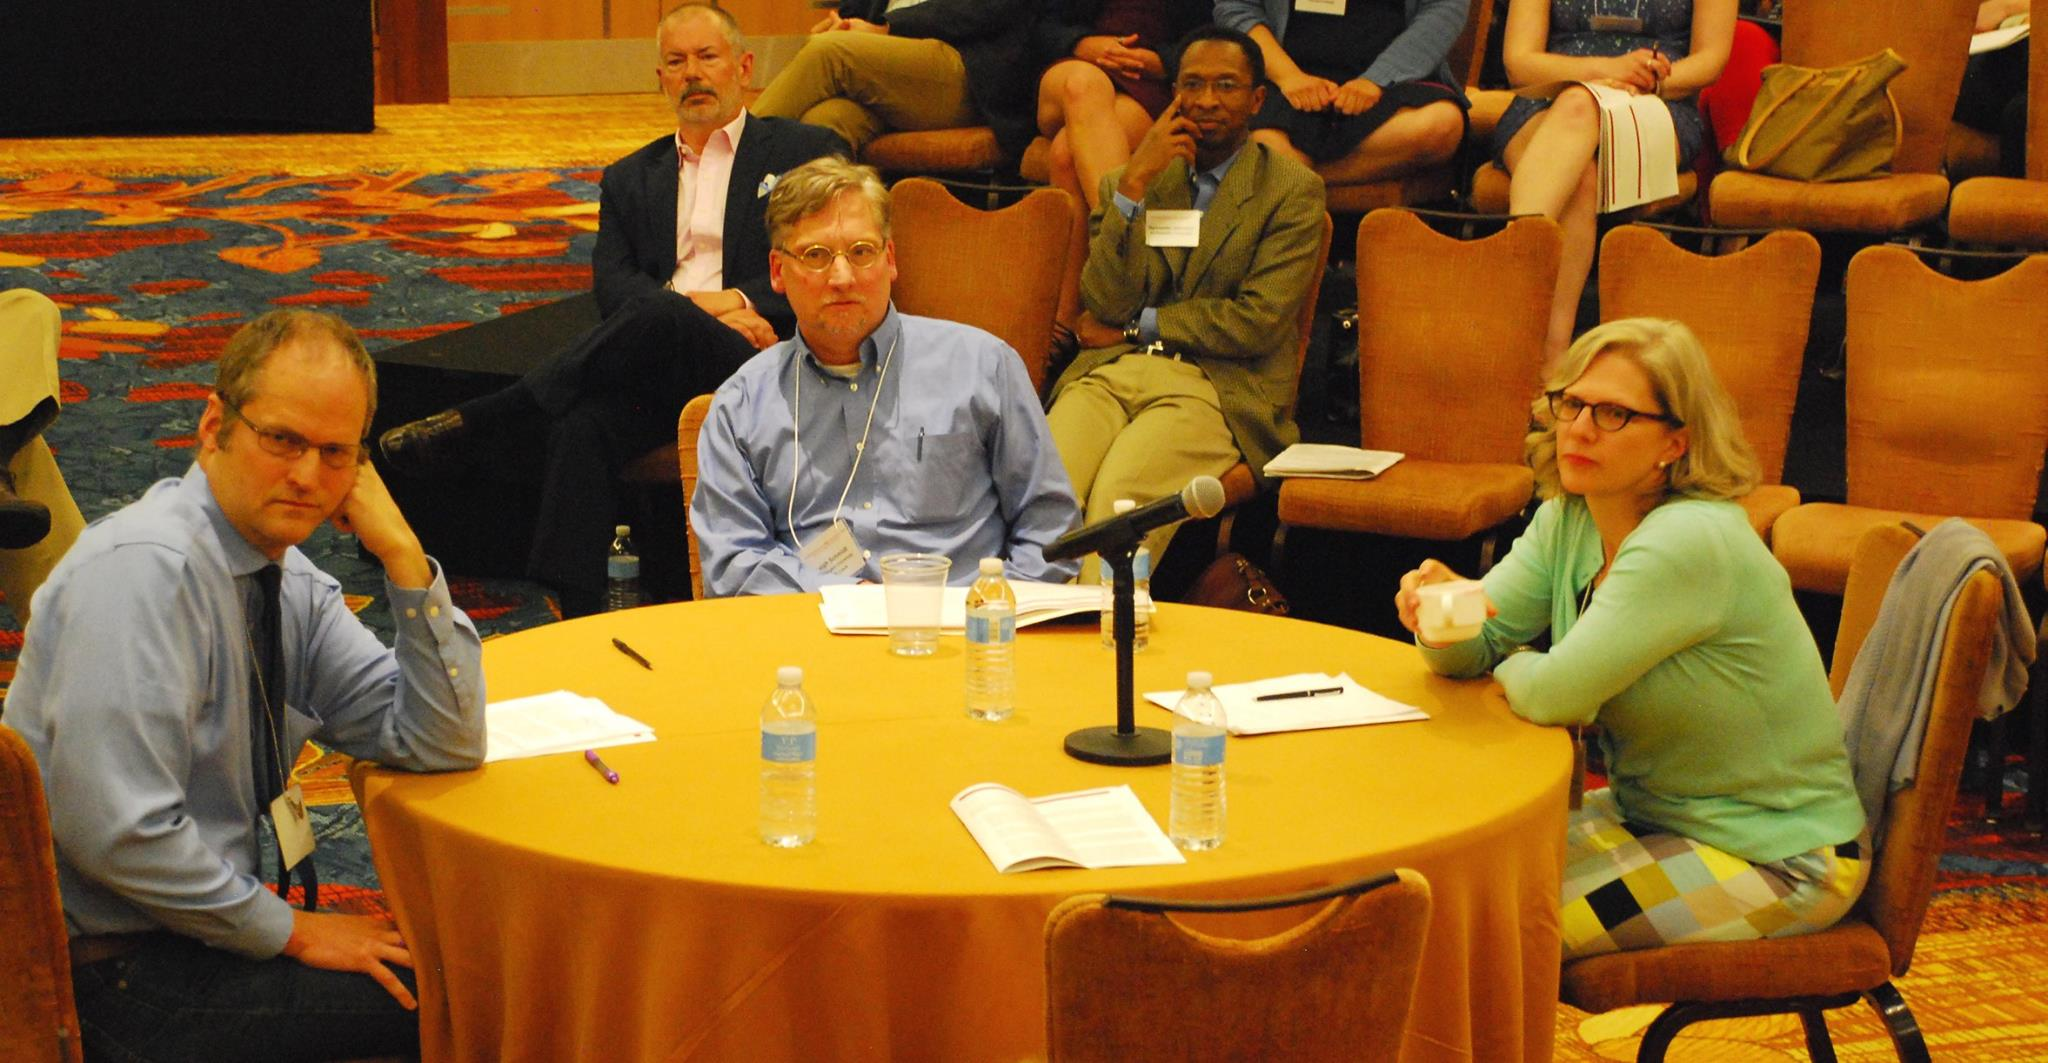 From left to right: Stephen Prothero, Leigh Eric Schmidt, and Pamela Klassen